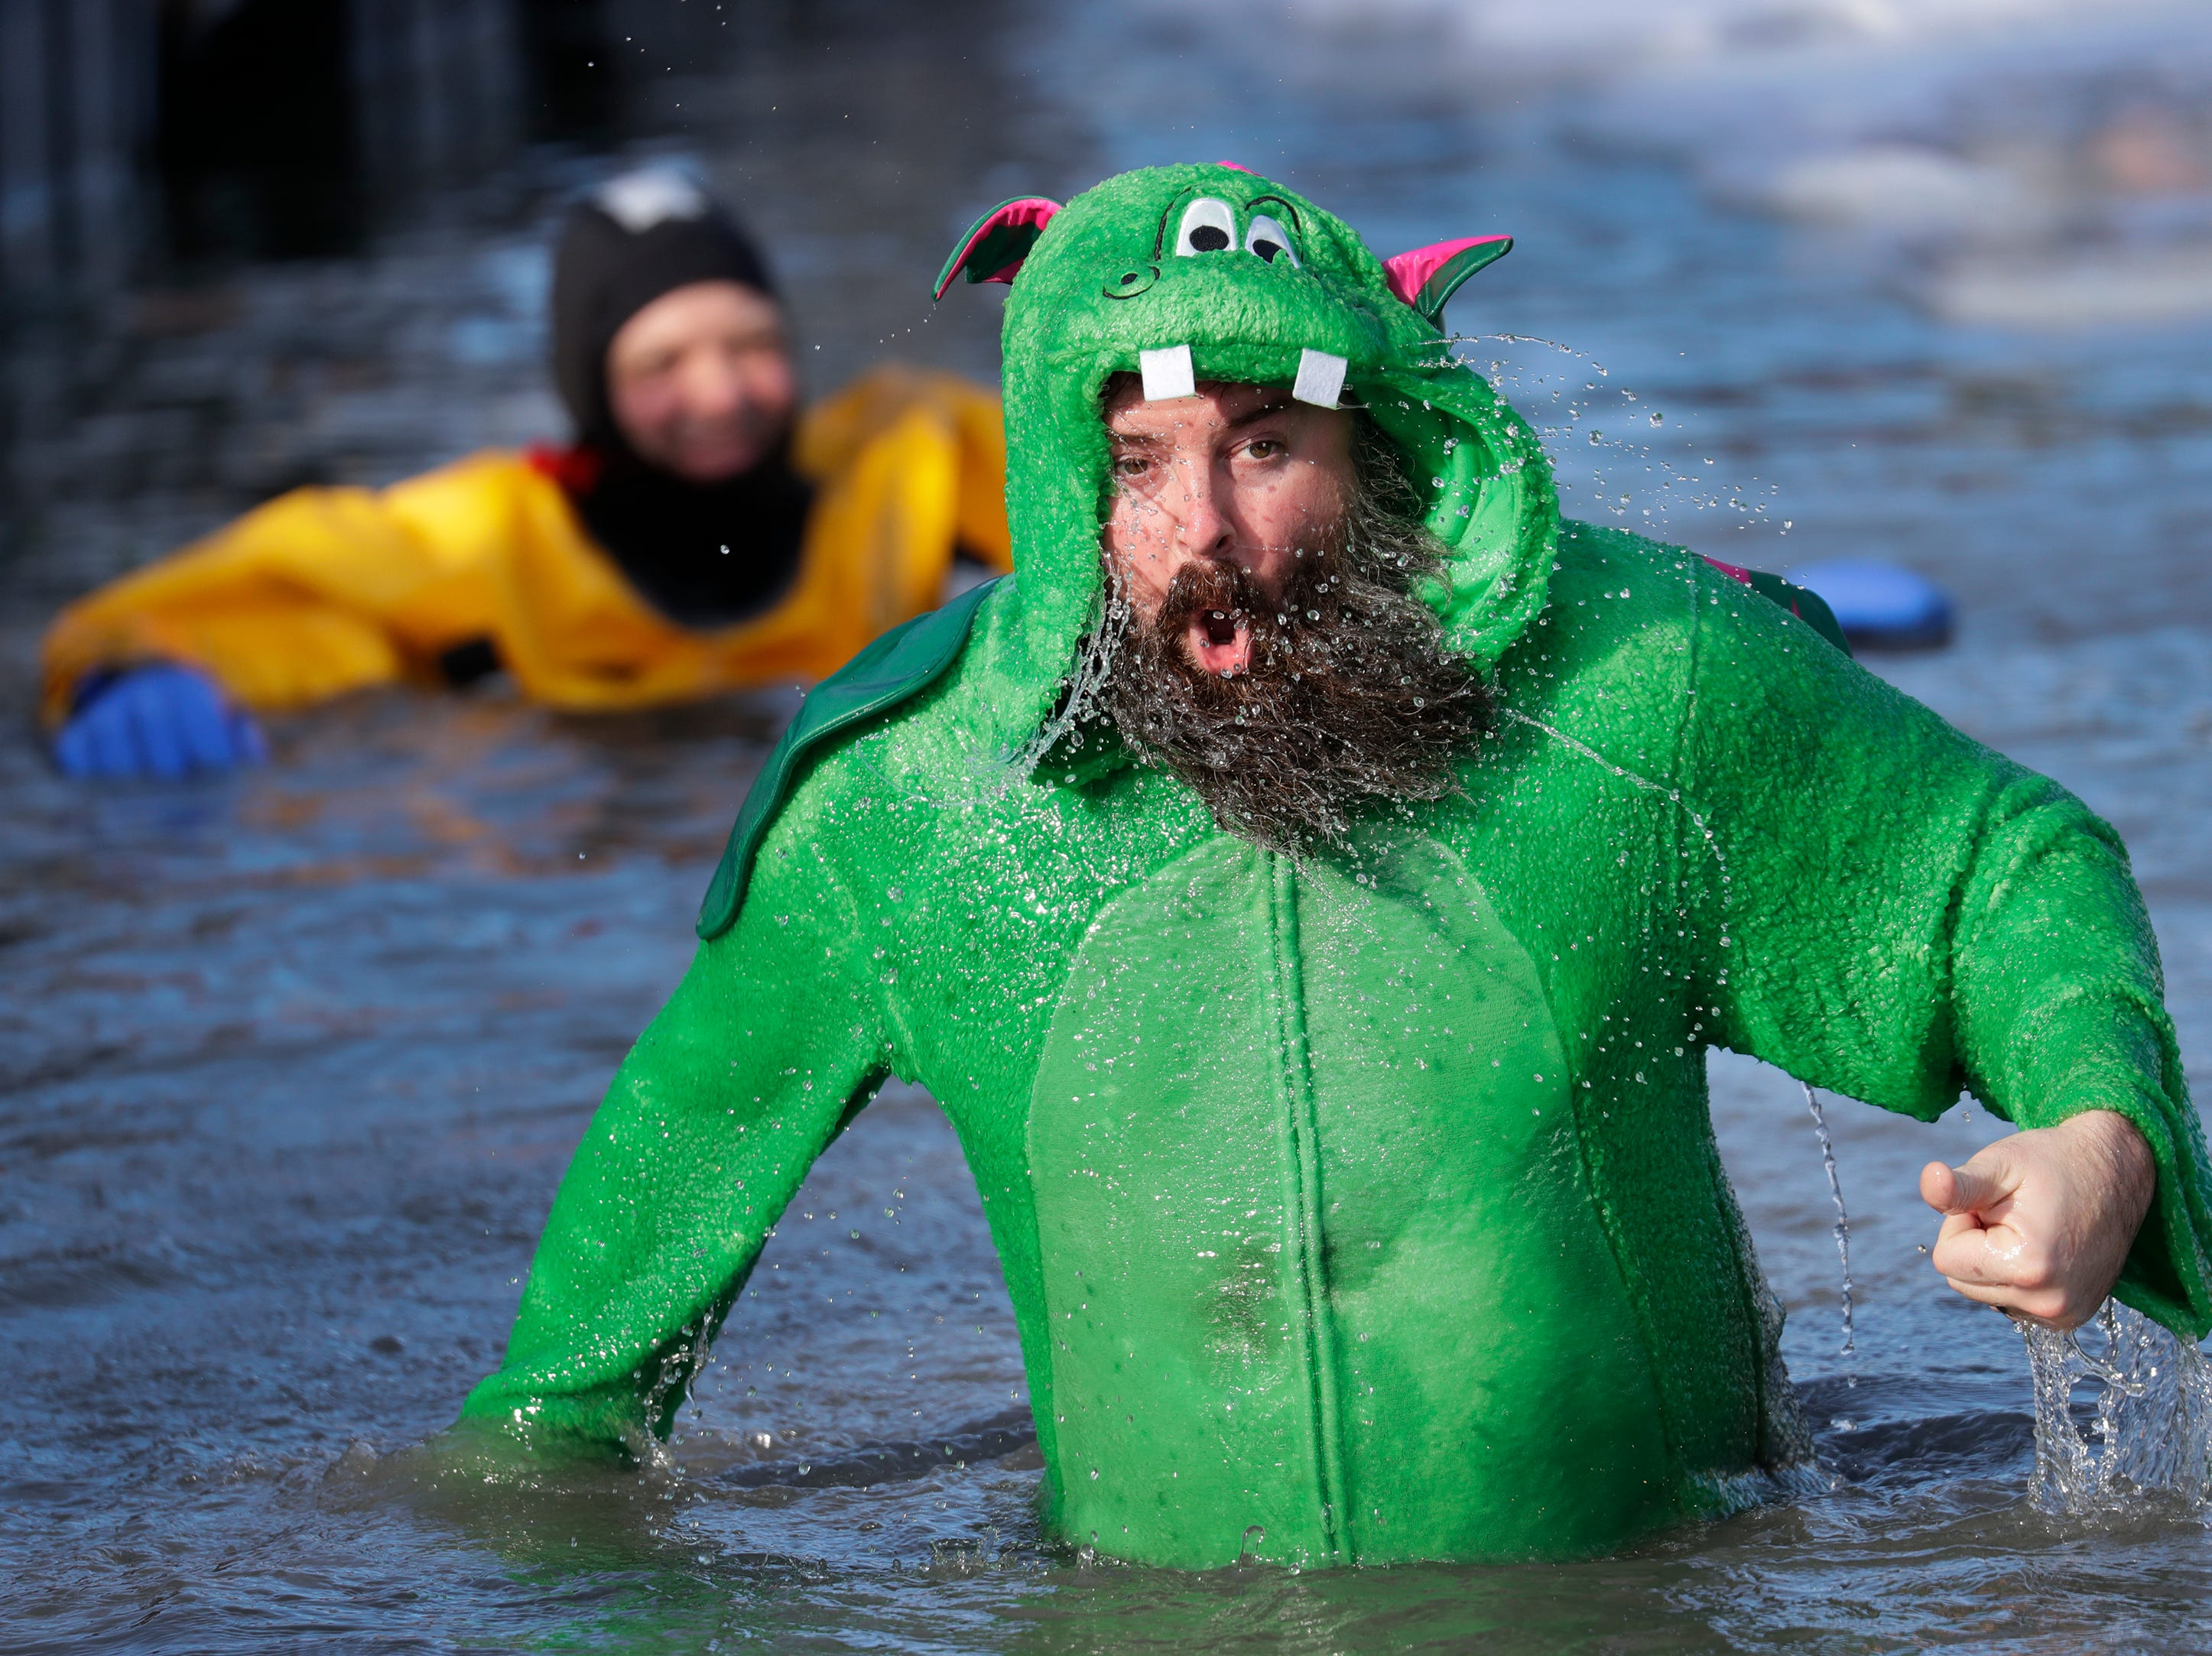 Danny Fili of Waupaca emerges from the frigid water during the Polar Bear Plunge Tuesday, January 1, 2019, at Becker Marine on Lime Kiln Lake in Waupaca, Wis. Dan Powers/USA TODAY NETWORK-Wisconsin